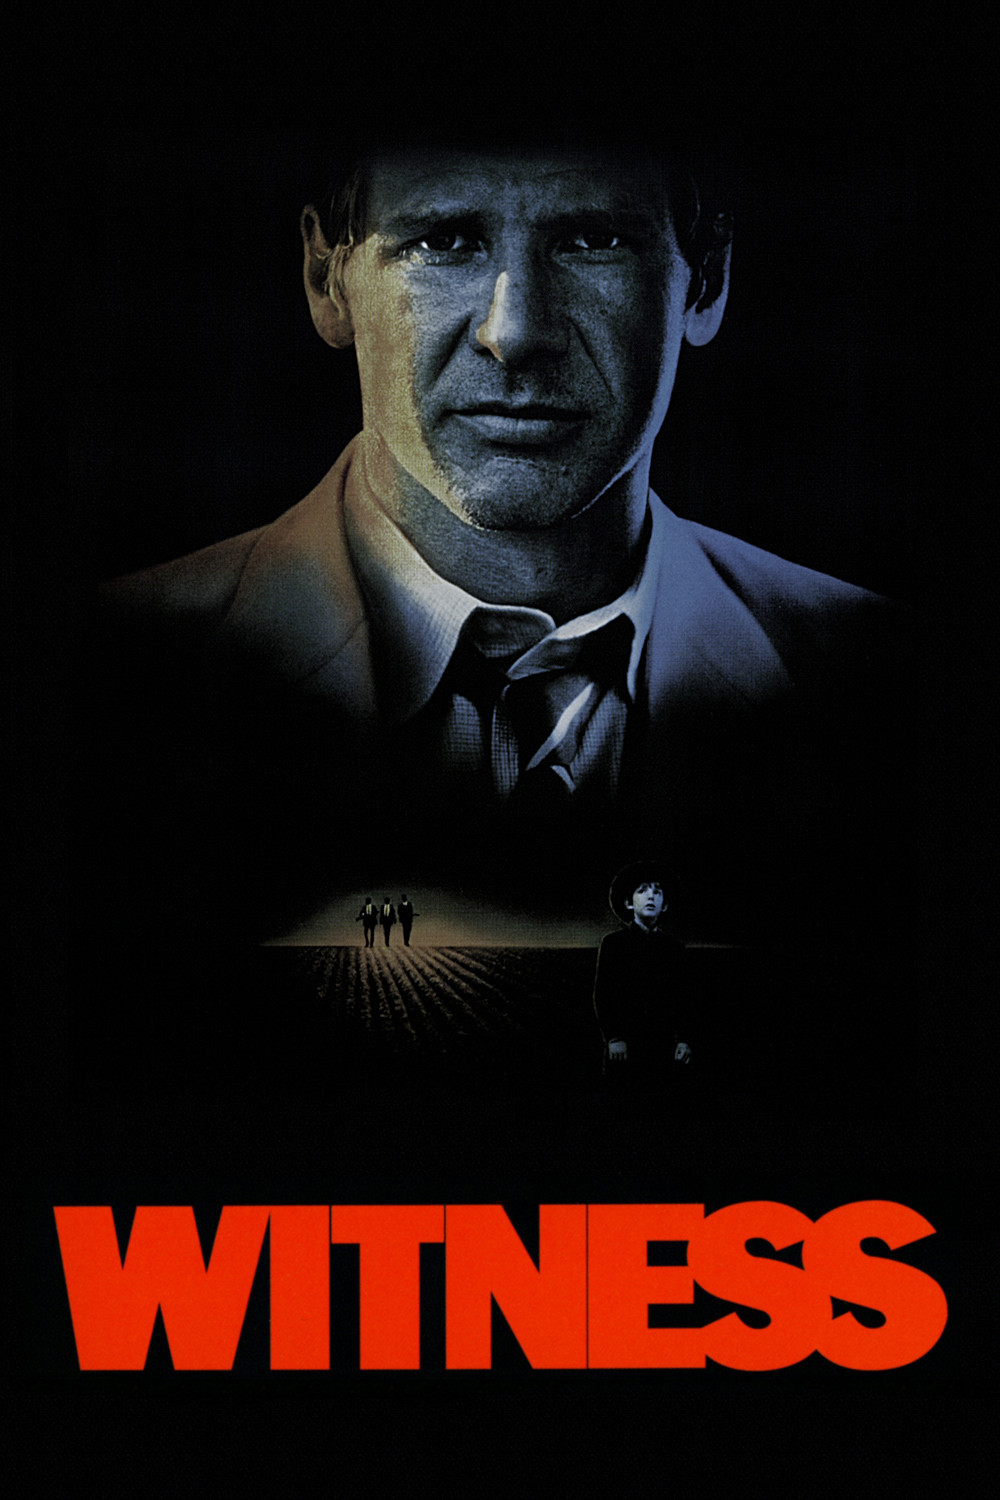 1985 Witness movie poster